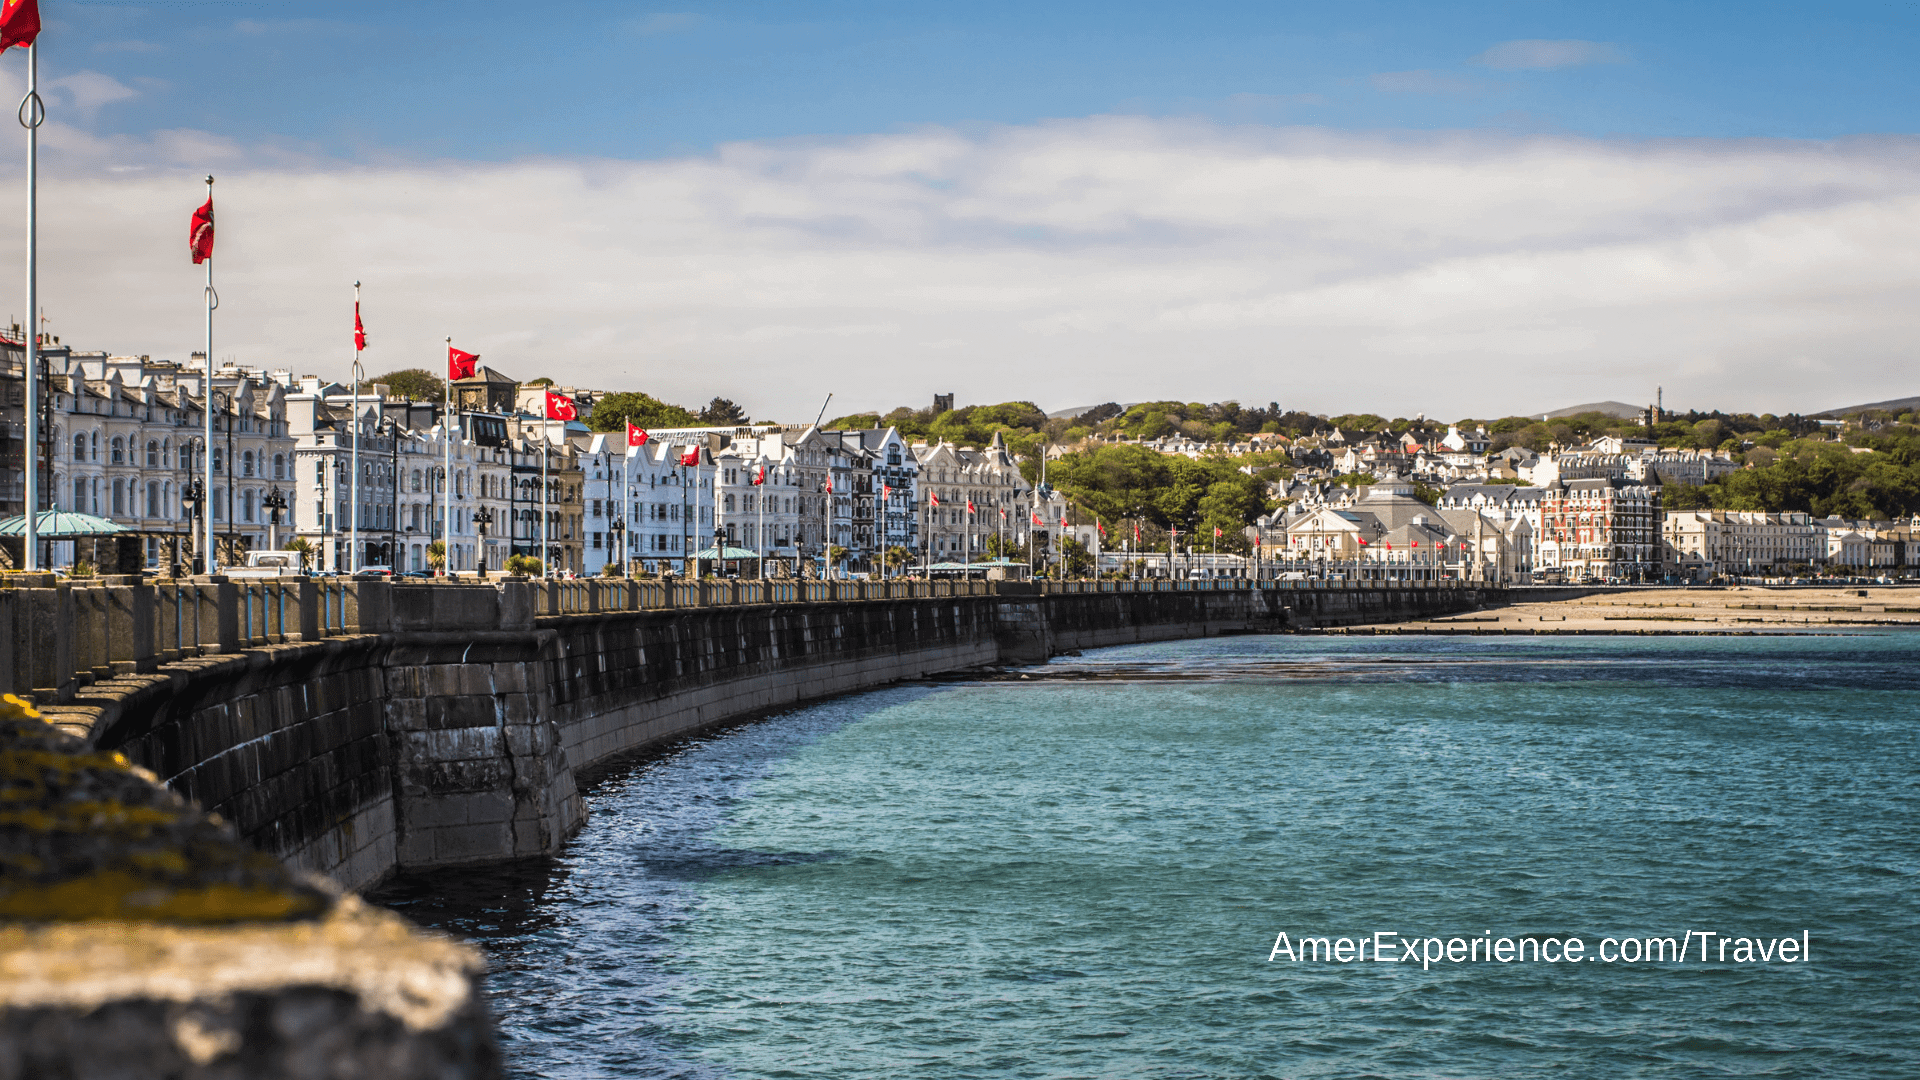 Fairies, fine food, steam trains and beaches galore – why you should visit the Isle of Man